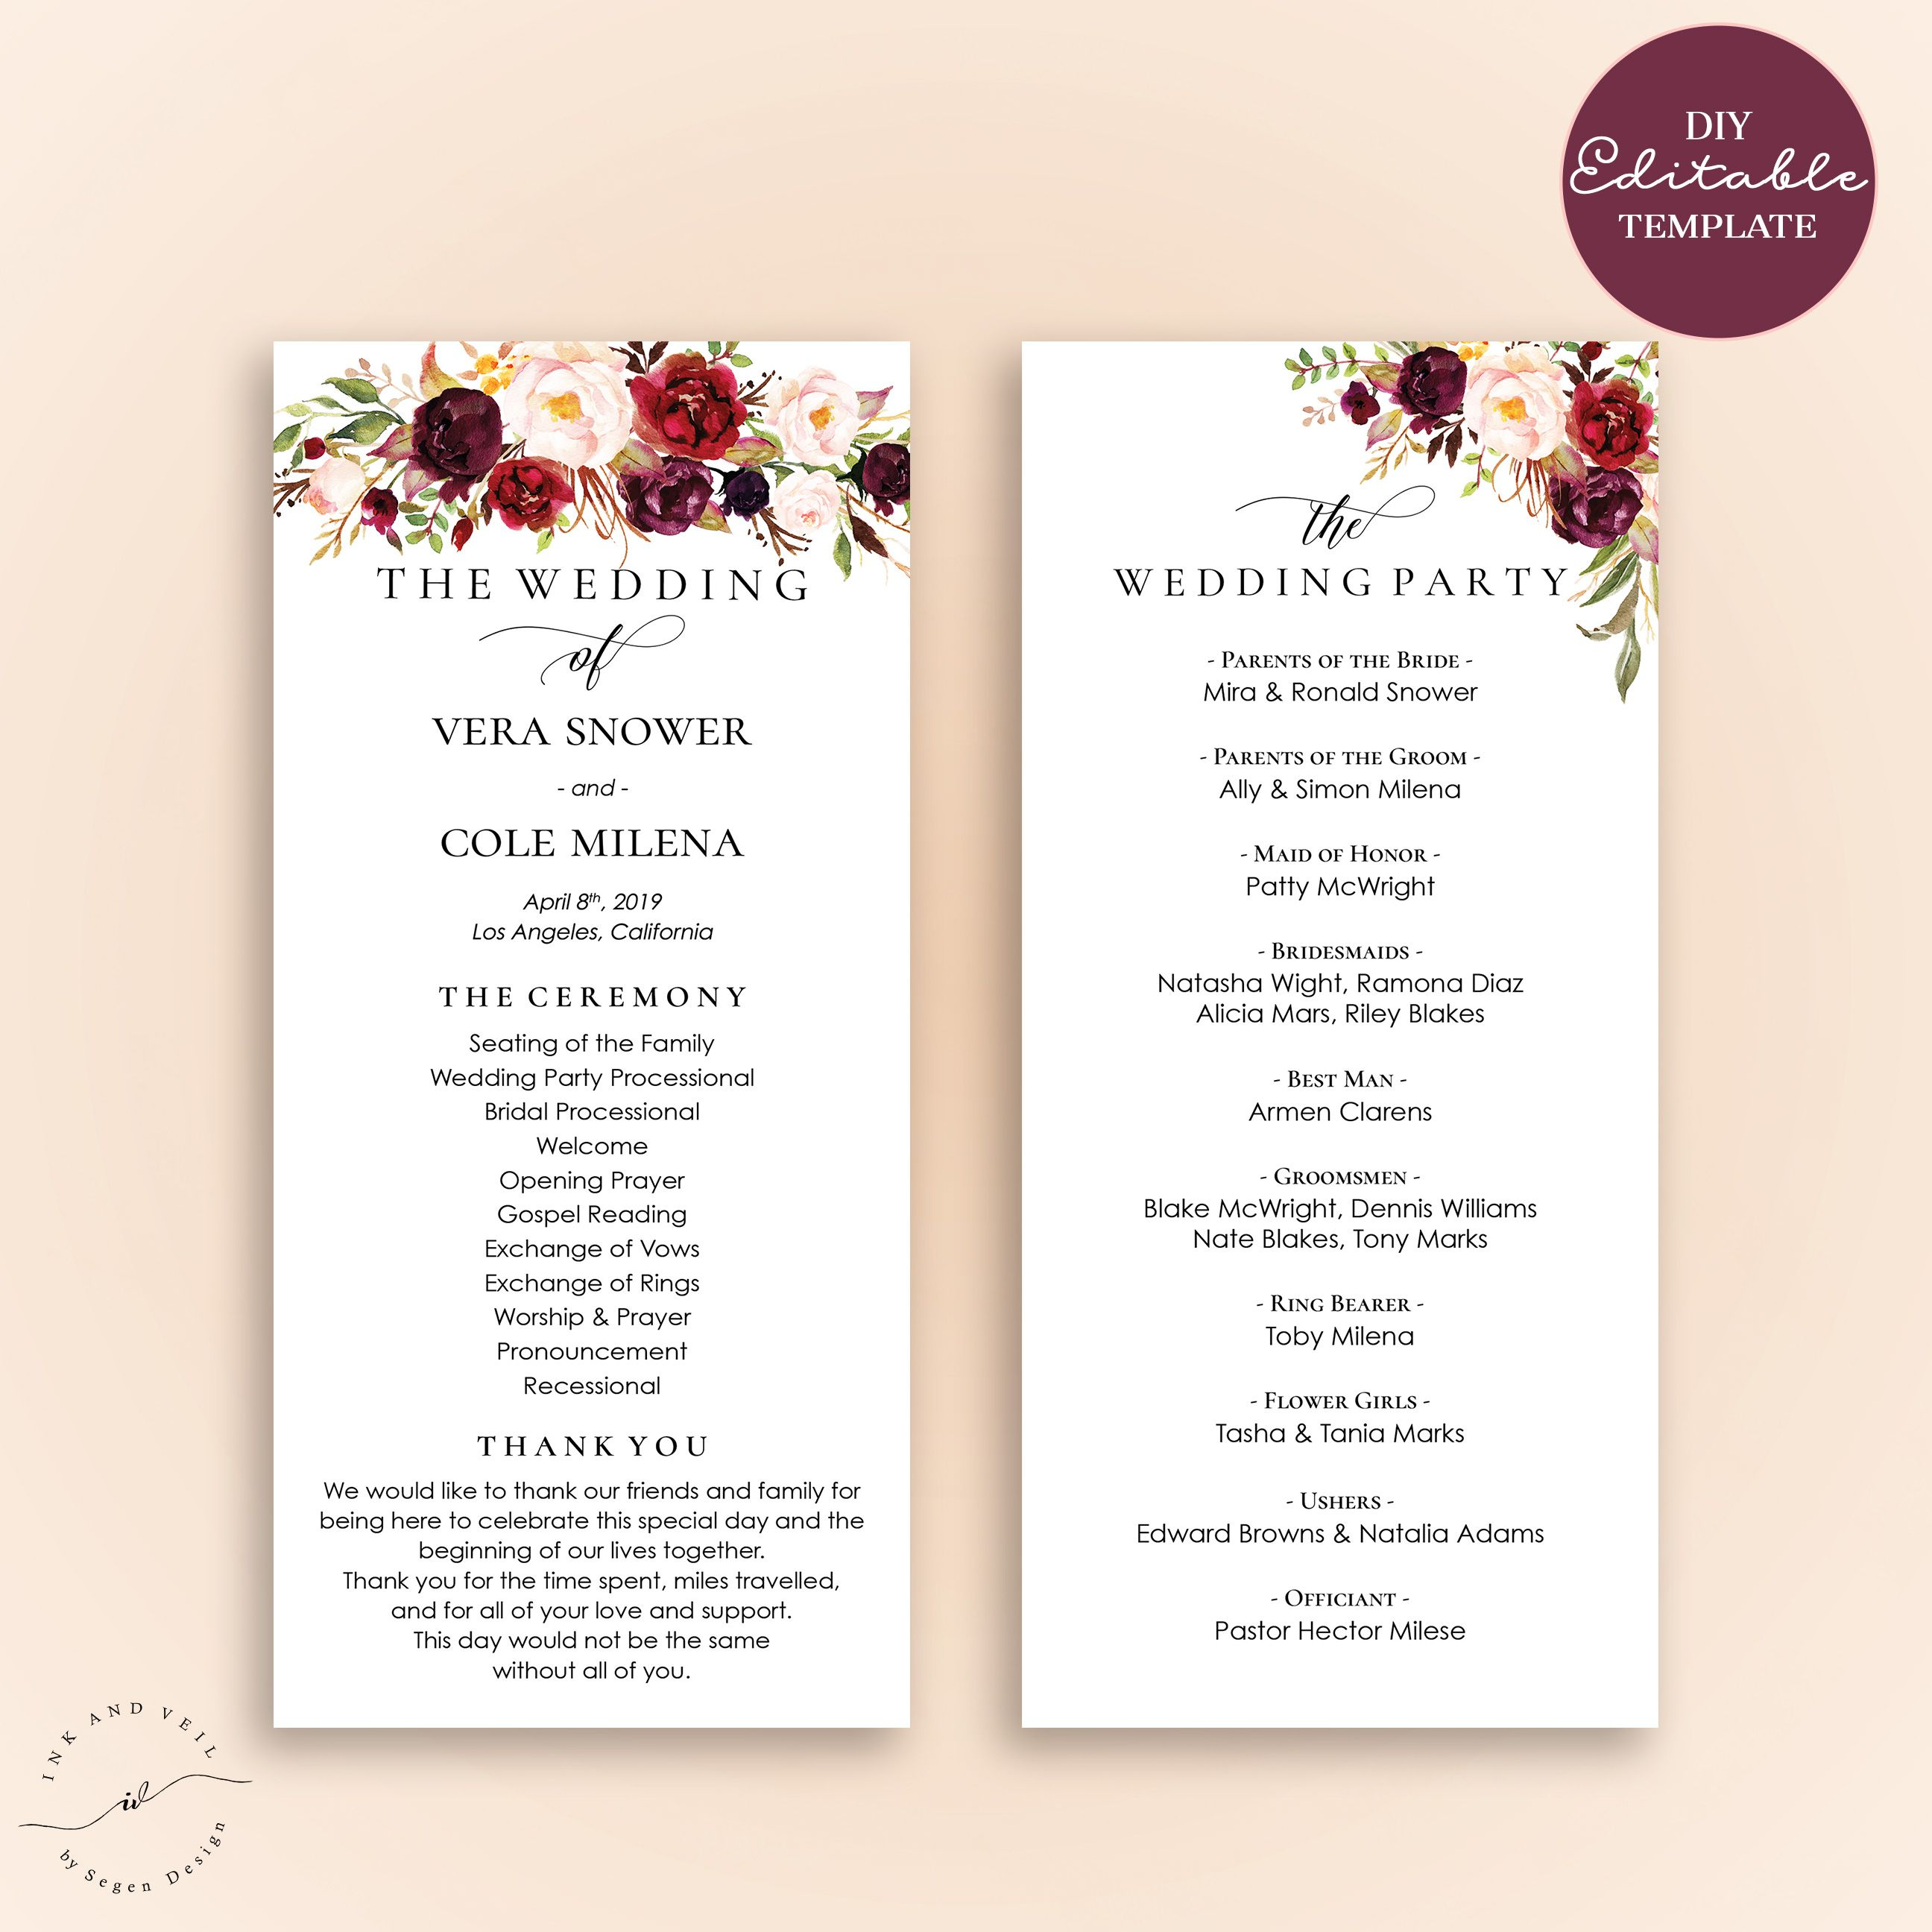 Wedding program editable template marsala burgundy floral for Wedding processional order template